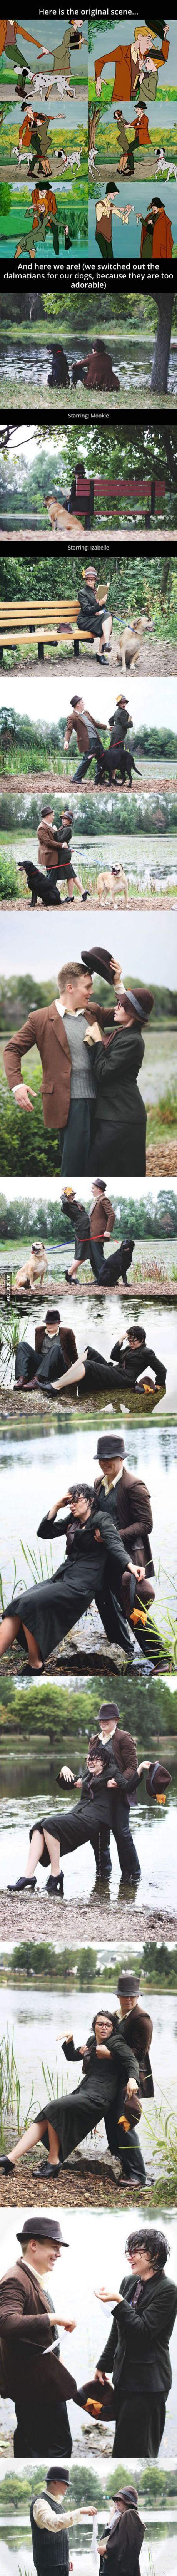 His future wife's favorite movie is 101 Dalmatians. For their engagement photos…